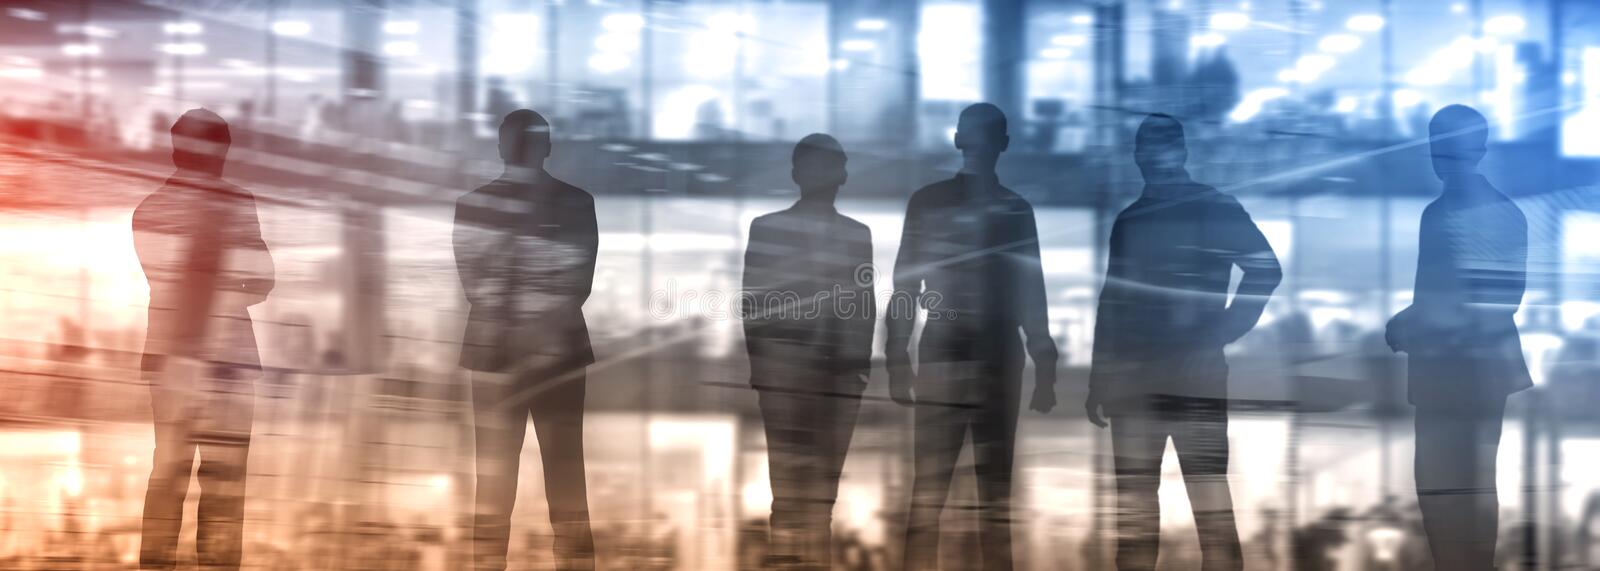 Abstakt image of people in the lobby of a modern business center with a blurred background stock photography